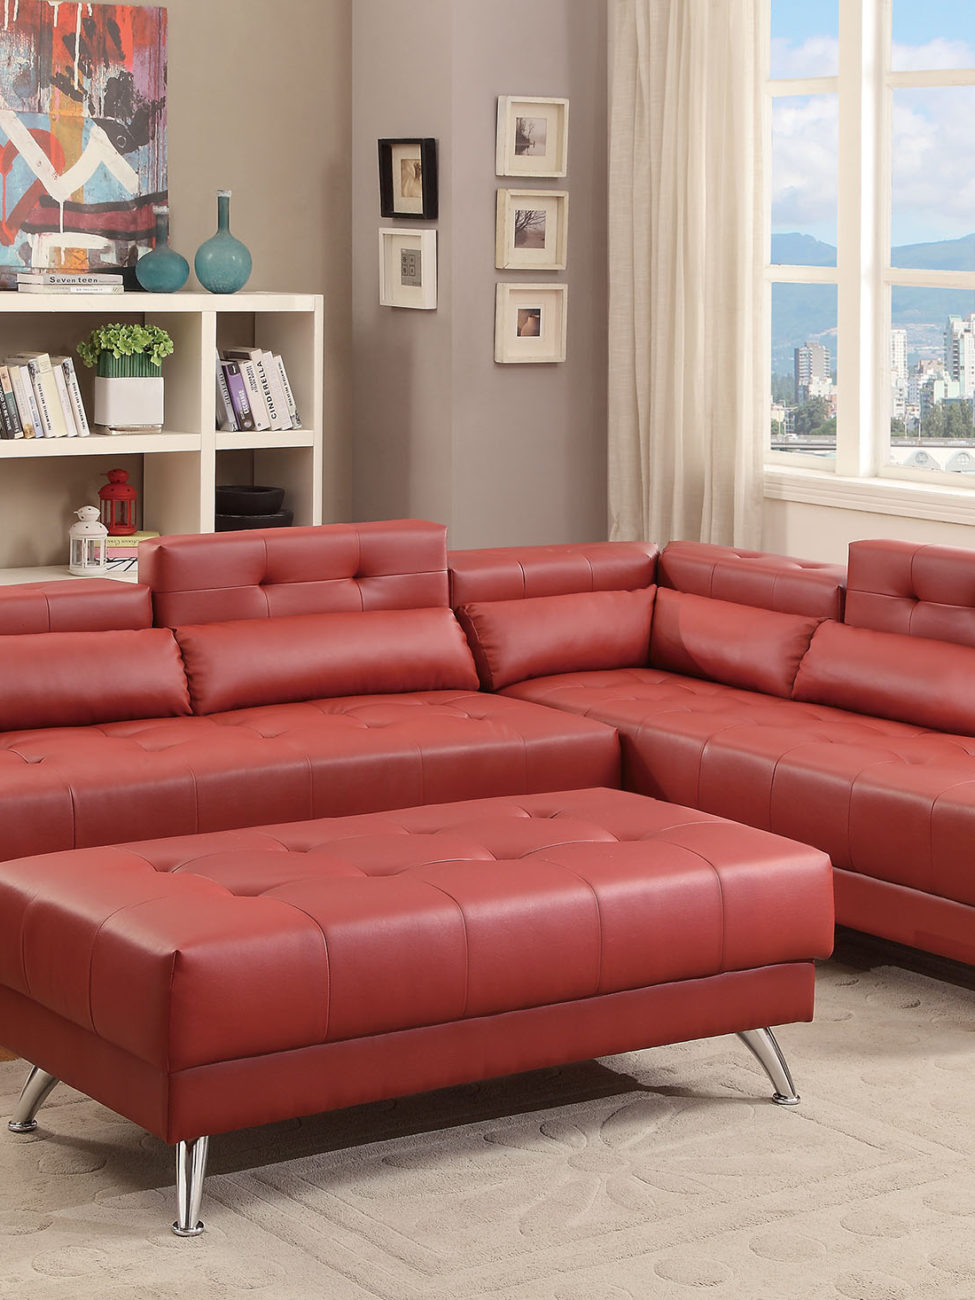 Torino Sectional Sofa Miami Gallery Furniture